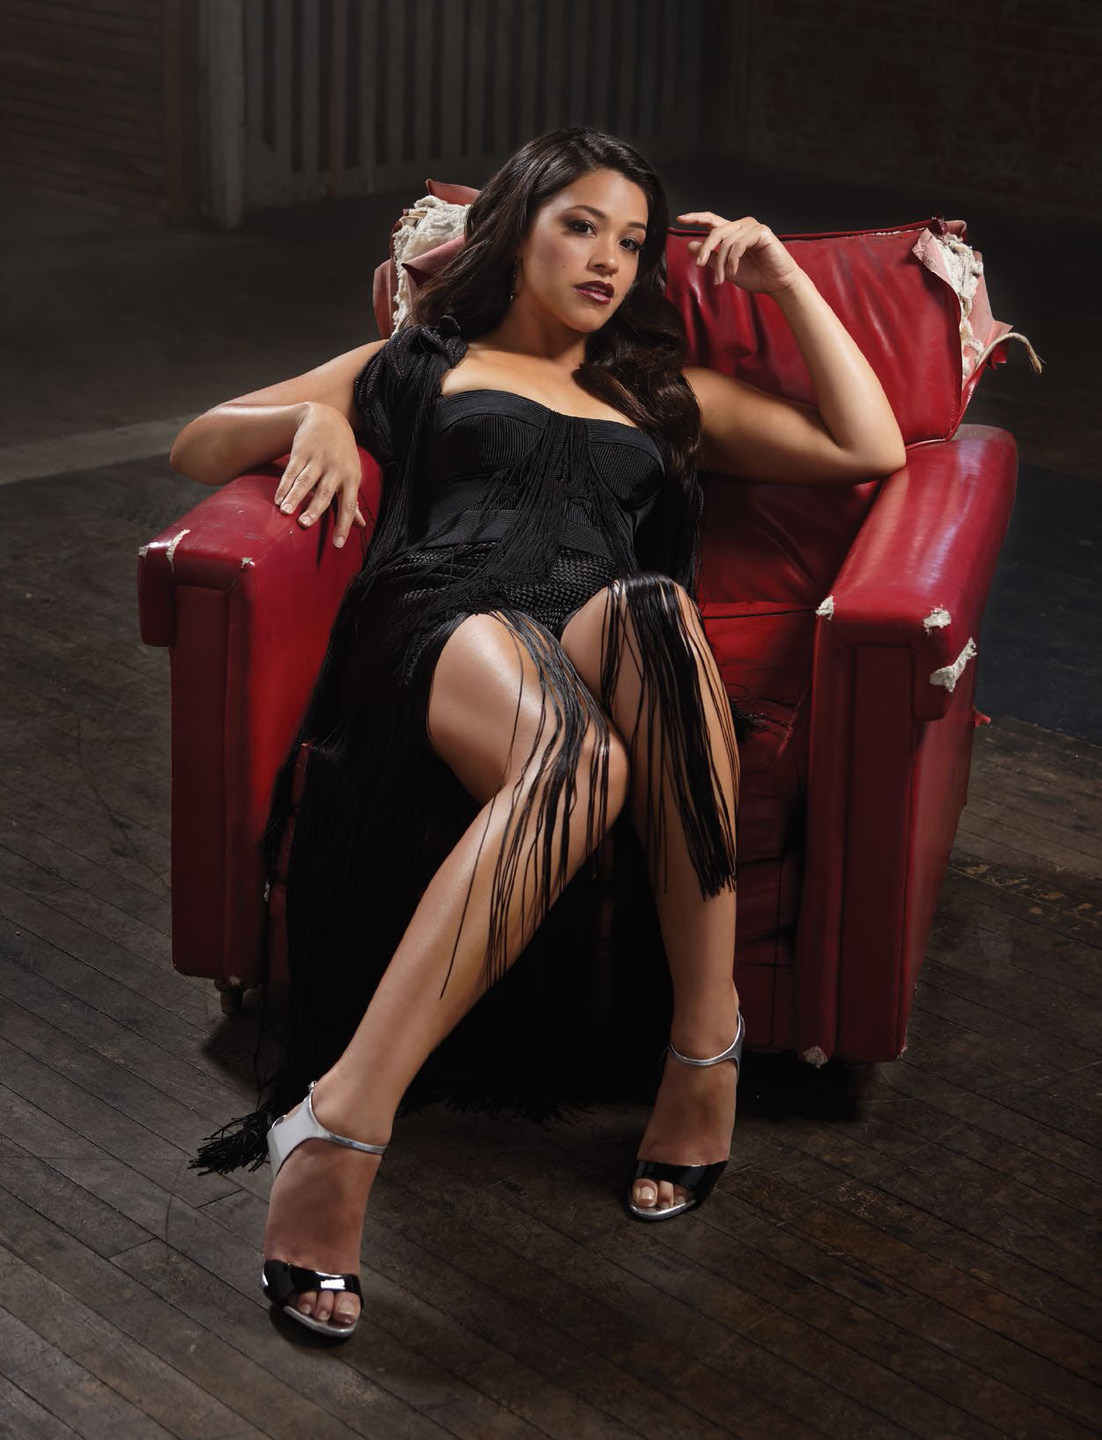 Feet Gina Rodriguez nudes (26 foto and video), Tits, Cleavage, Twitter, swimsuit 2015